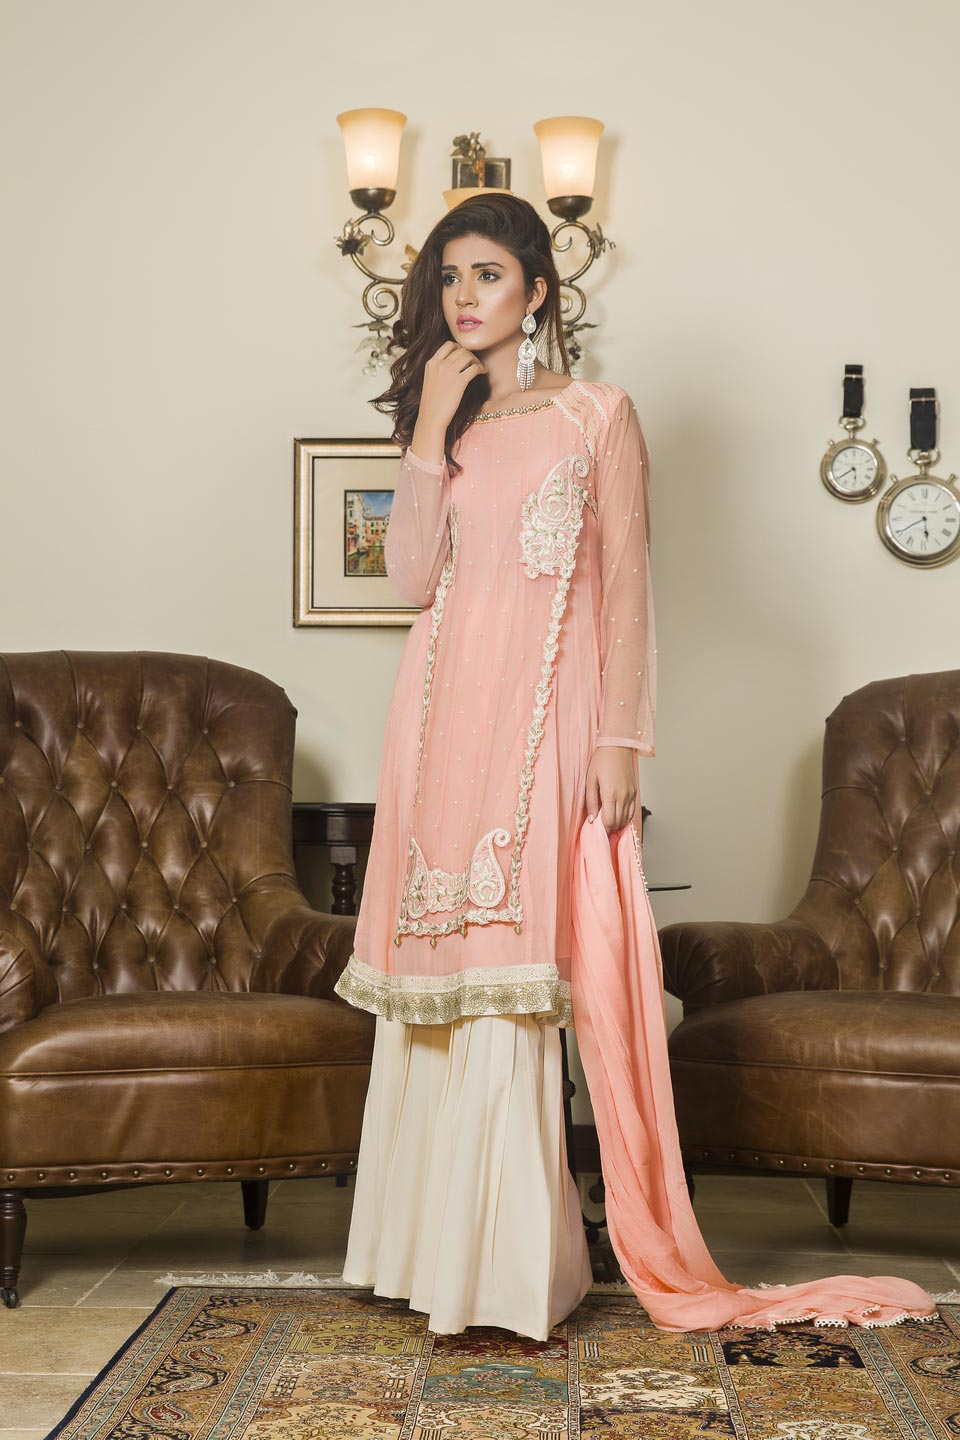 351454343e0 PEACH AND OFF-WHITE COLOR PARTY WEAR - SAS602 - Exclusive Online ...